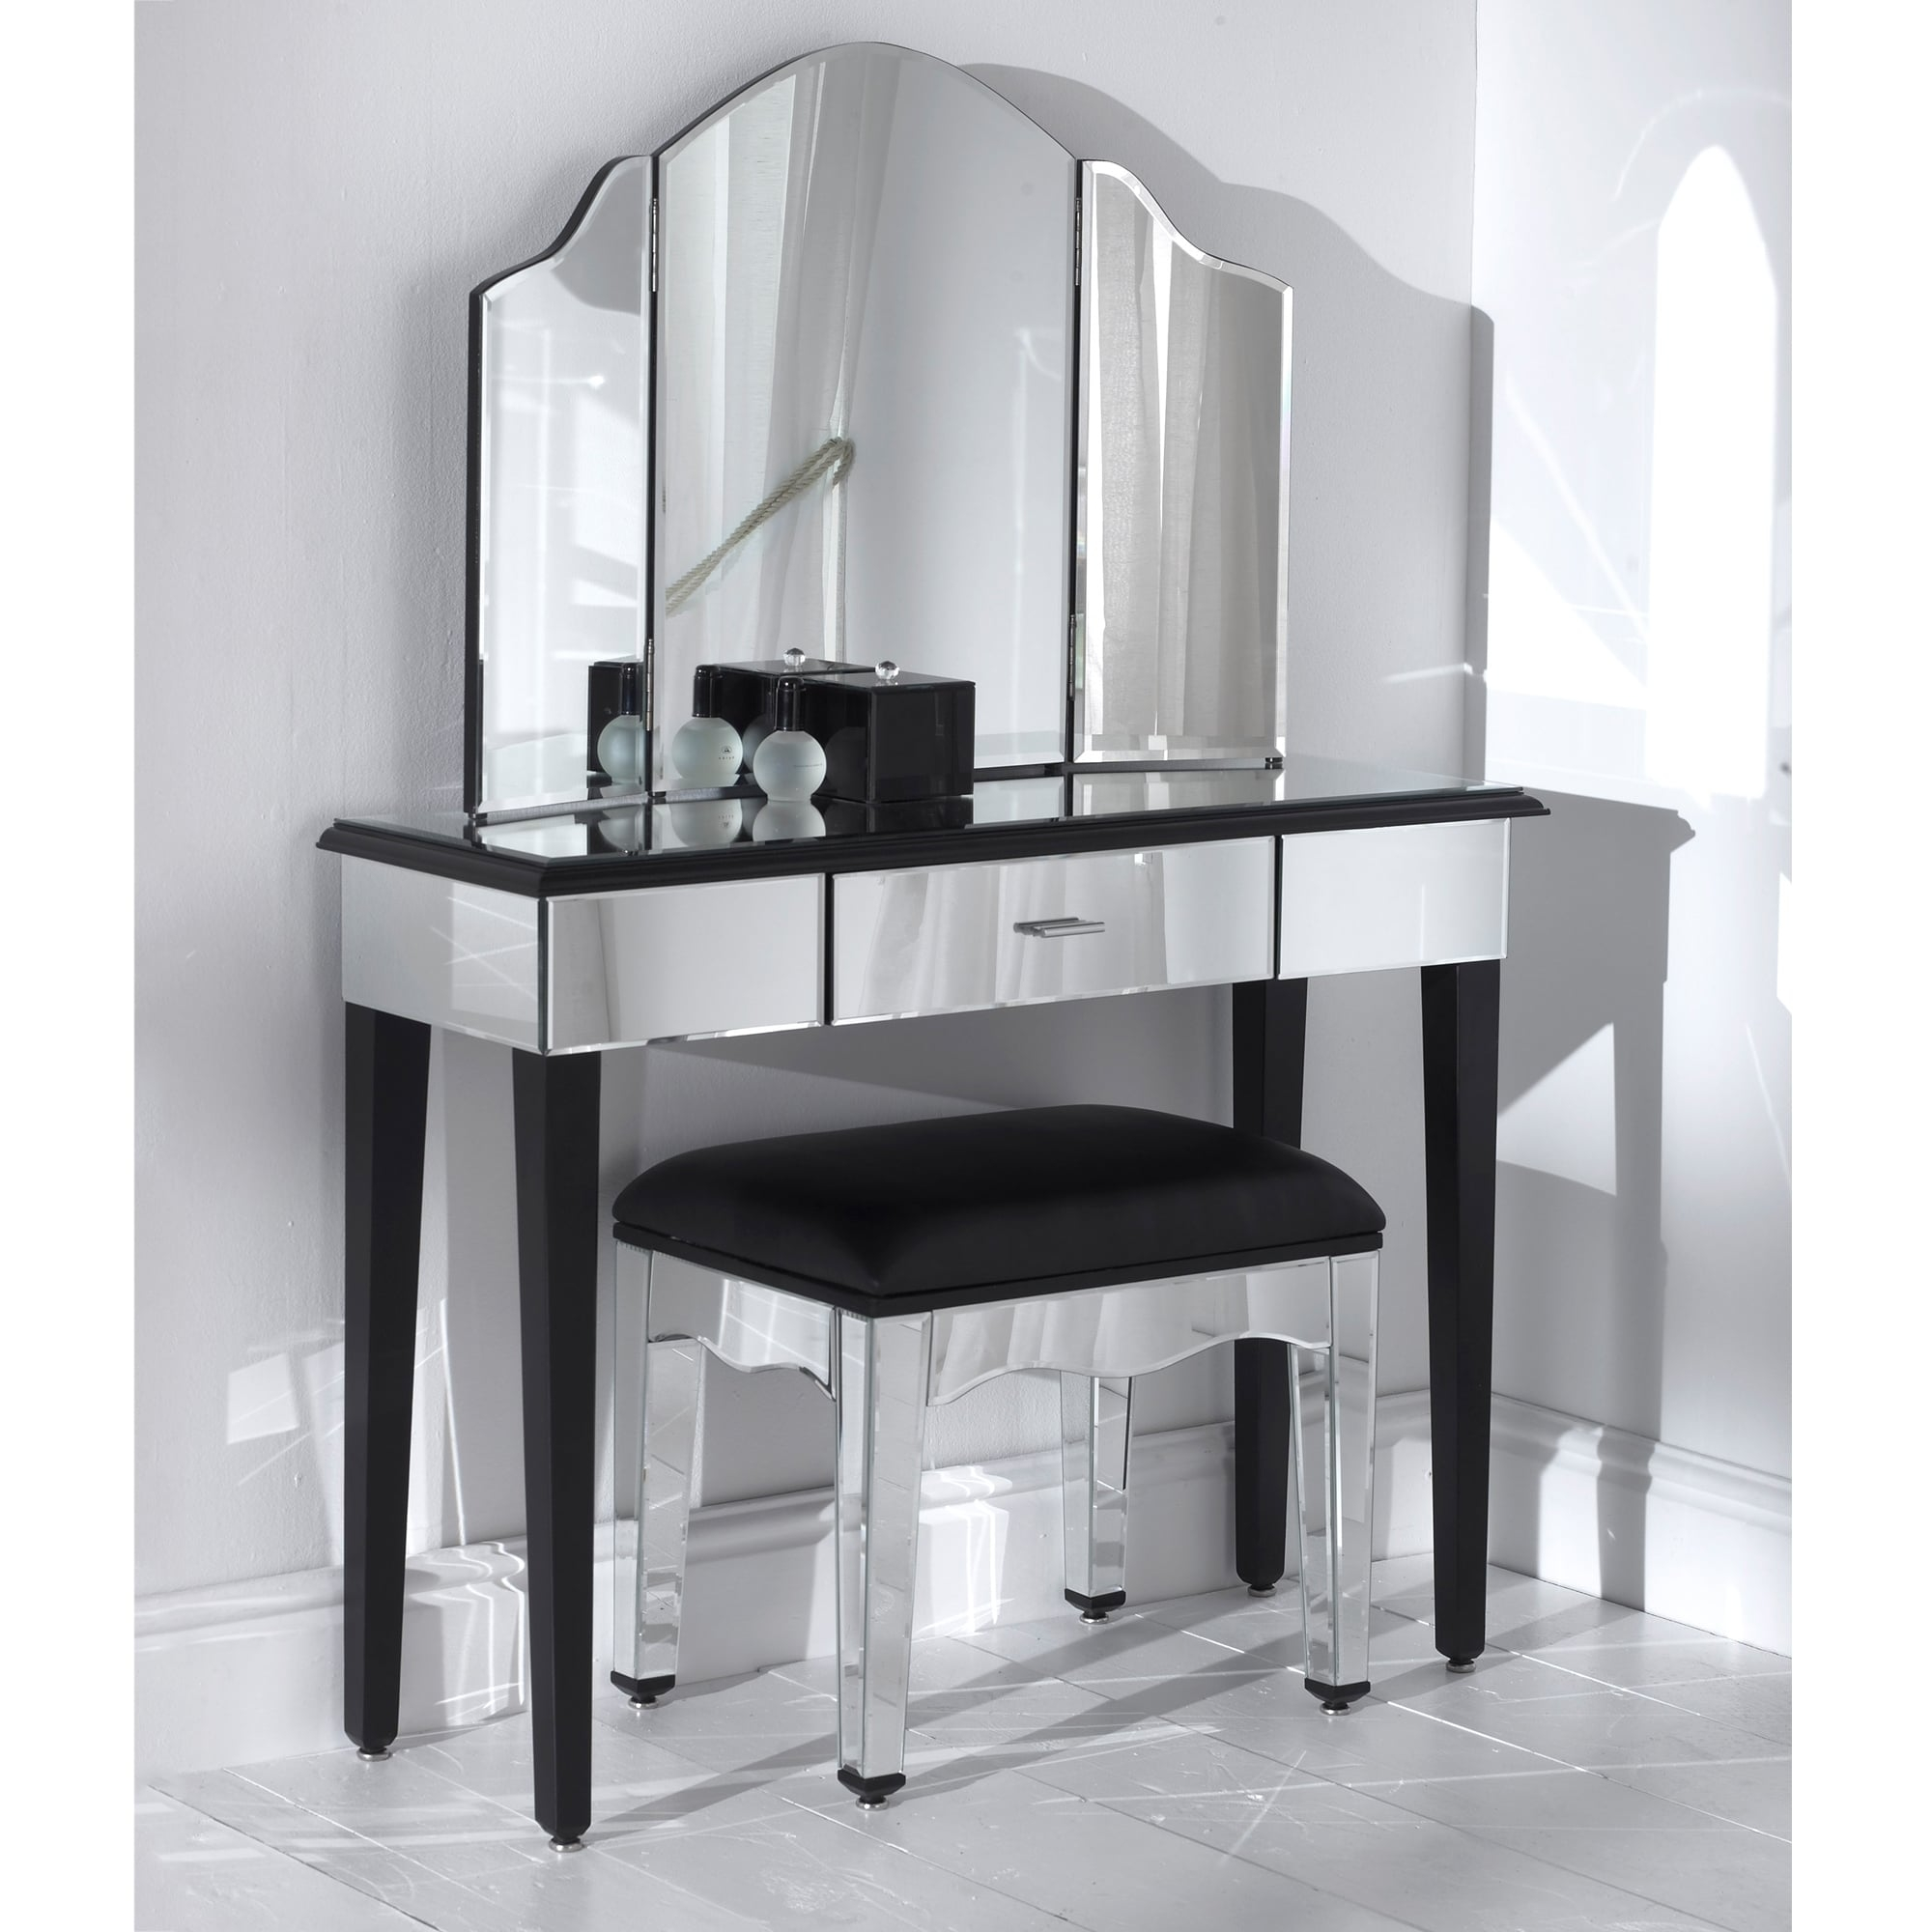 Bisley 4 Drawer Filing Cabinet Creative Cabinets Decoration Pertaining To Mirrored Occasional Tables (View 11 of 15)